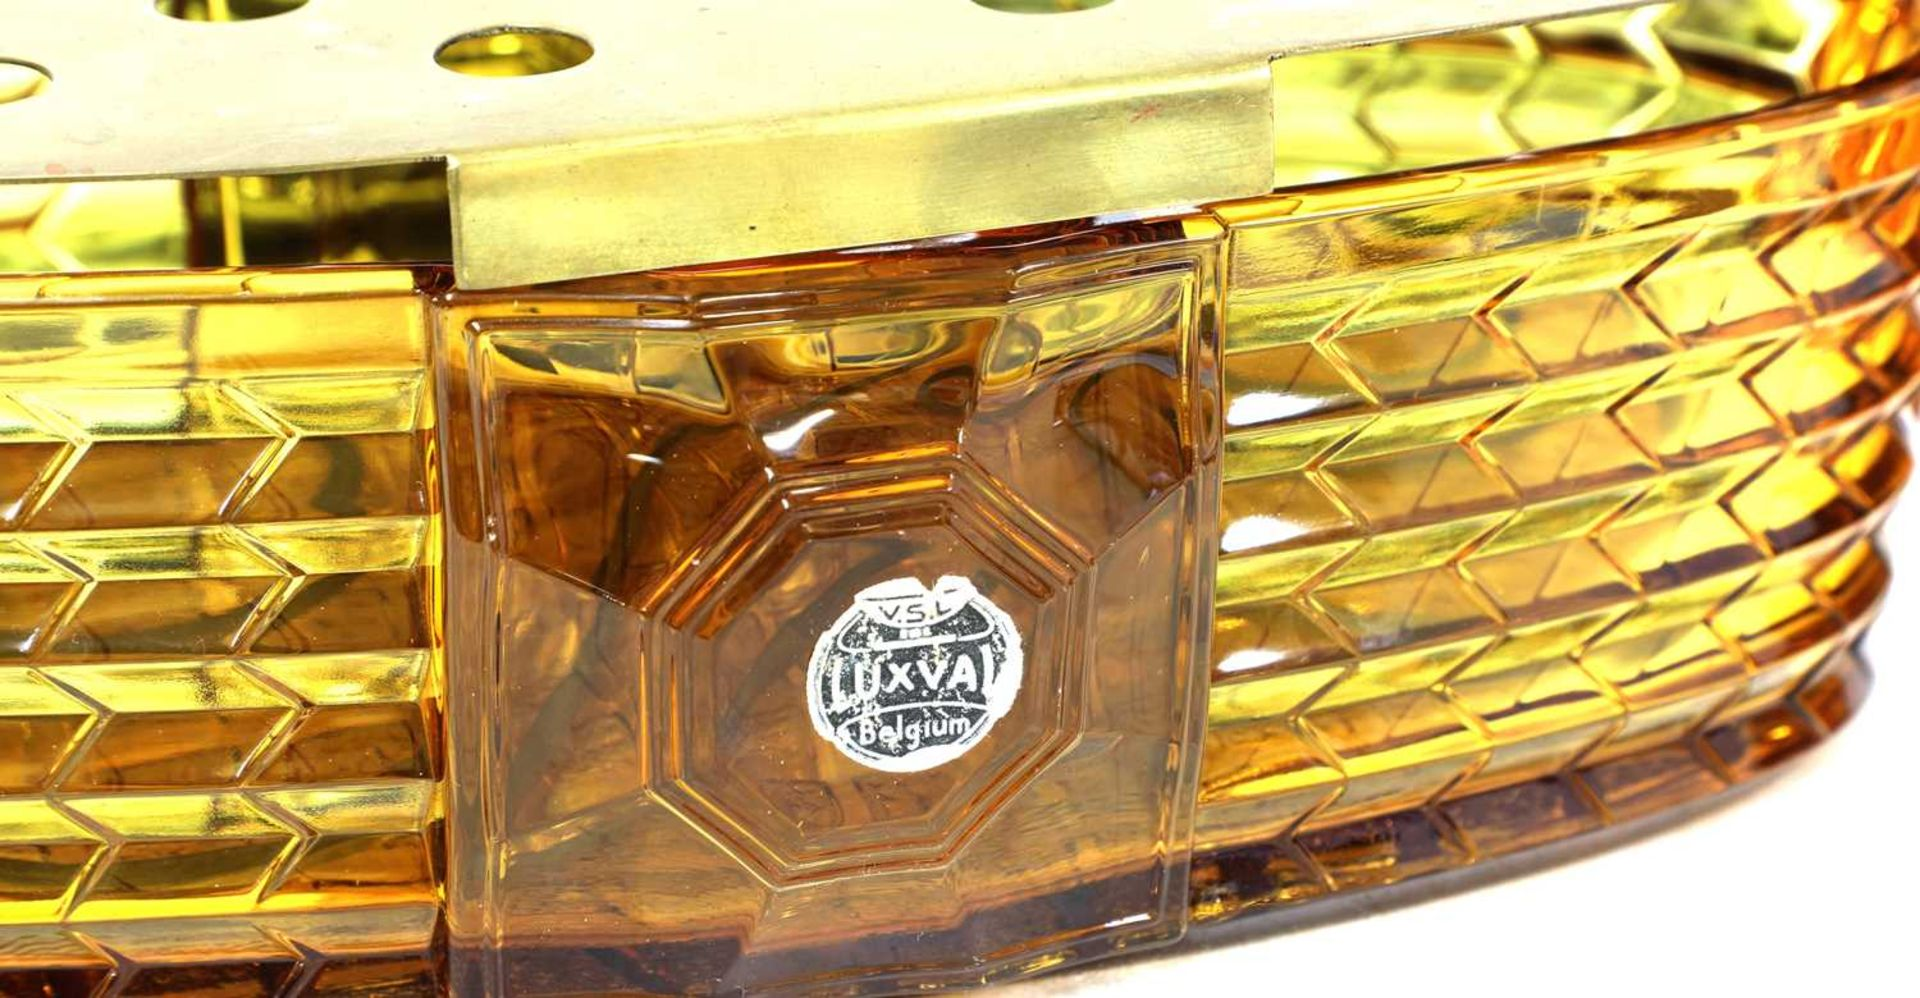 Two Val St Lambert 'Luxal' amber and green glass plate warmers or centrepieces, - Image 3 of 5